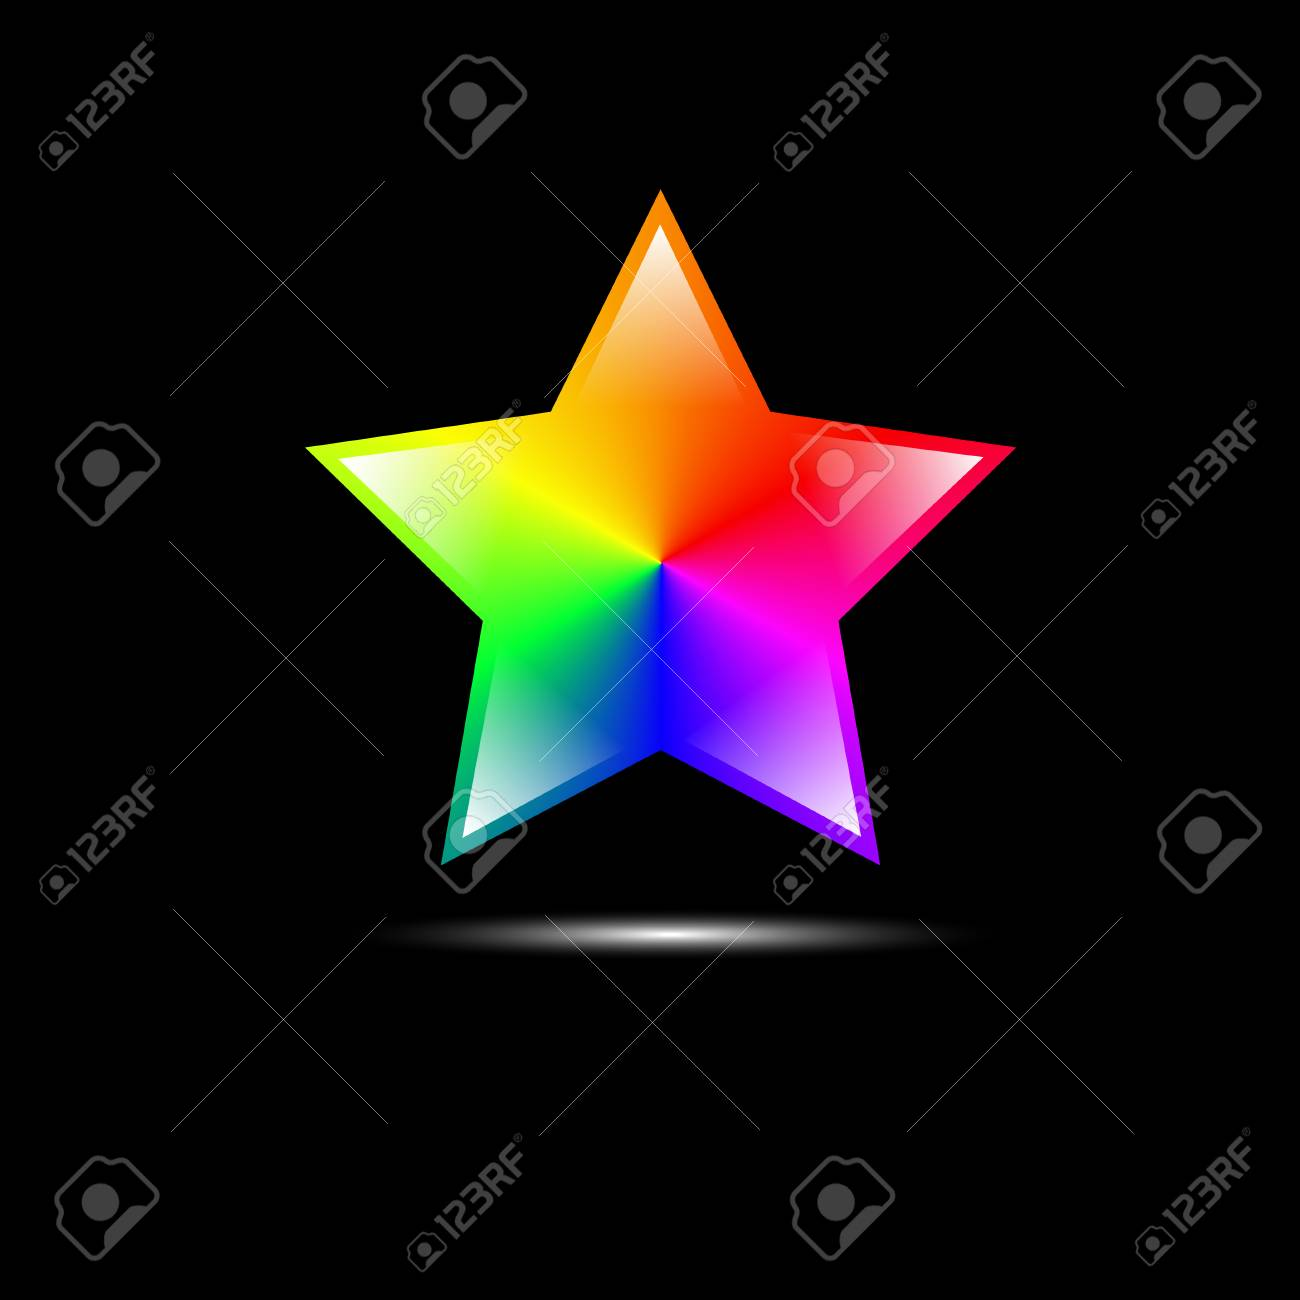 abstract colorful star shape Vector EPS10 Stock Vector - 28134226